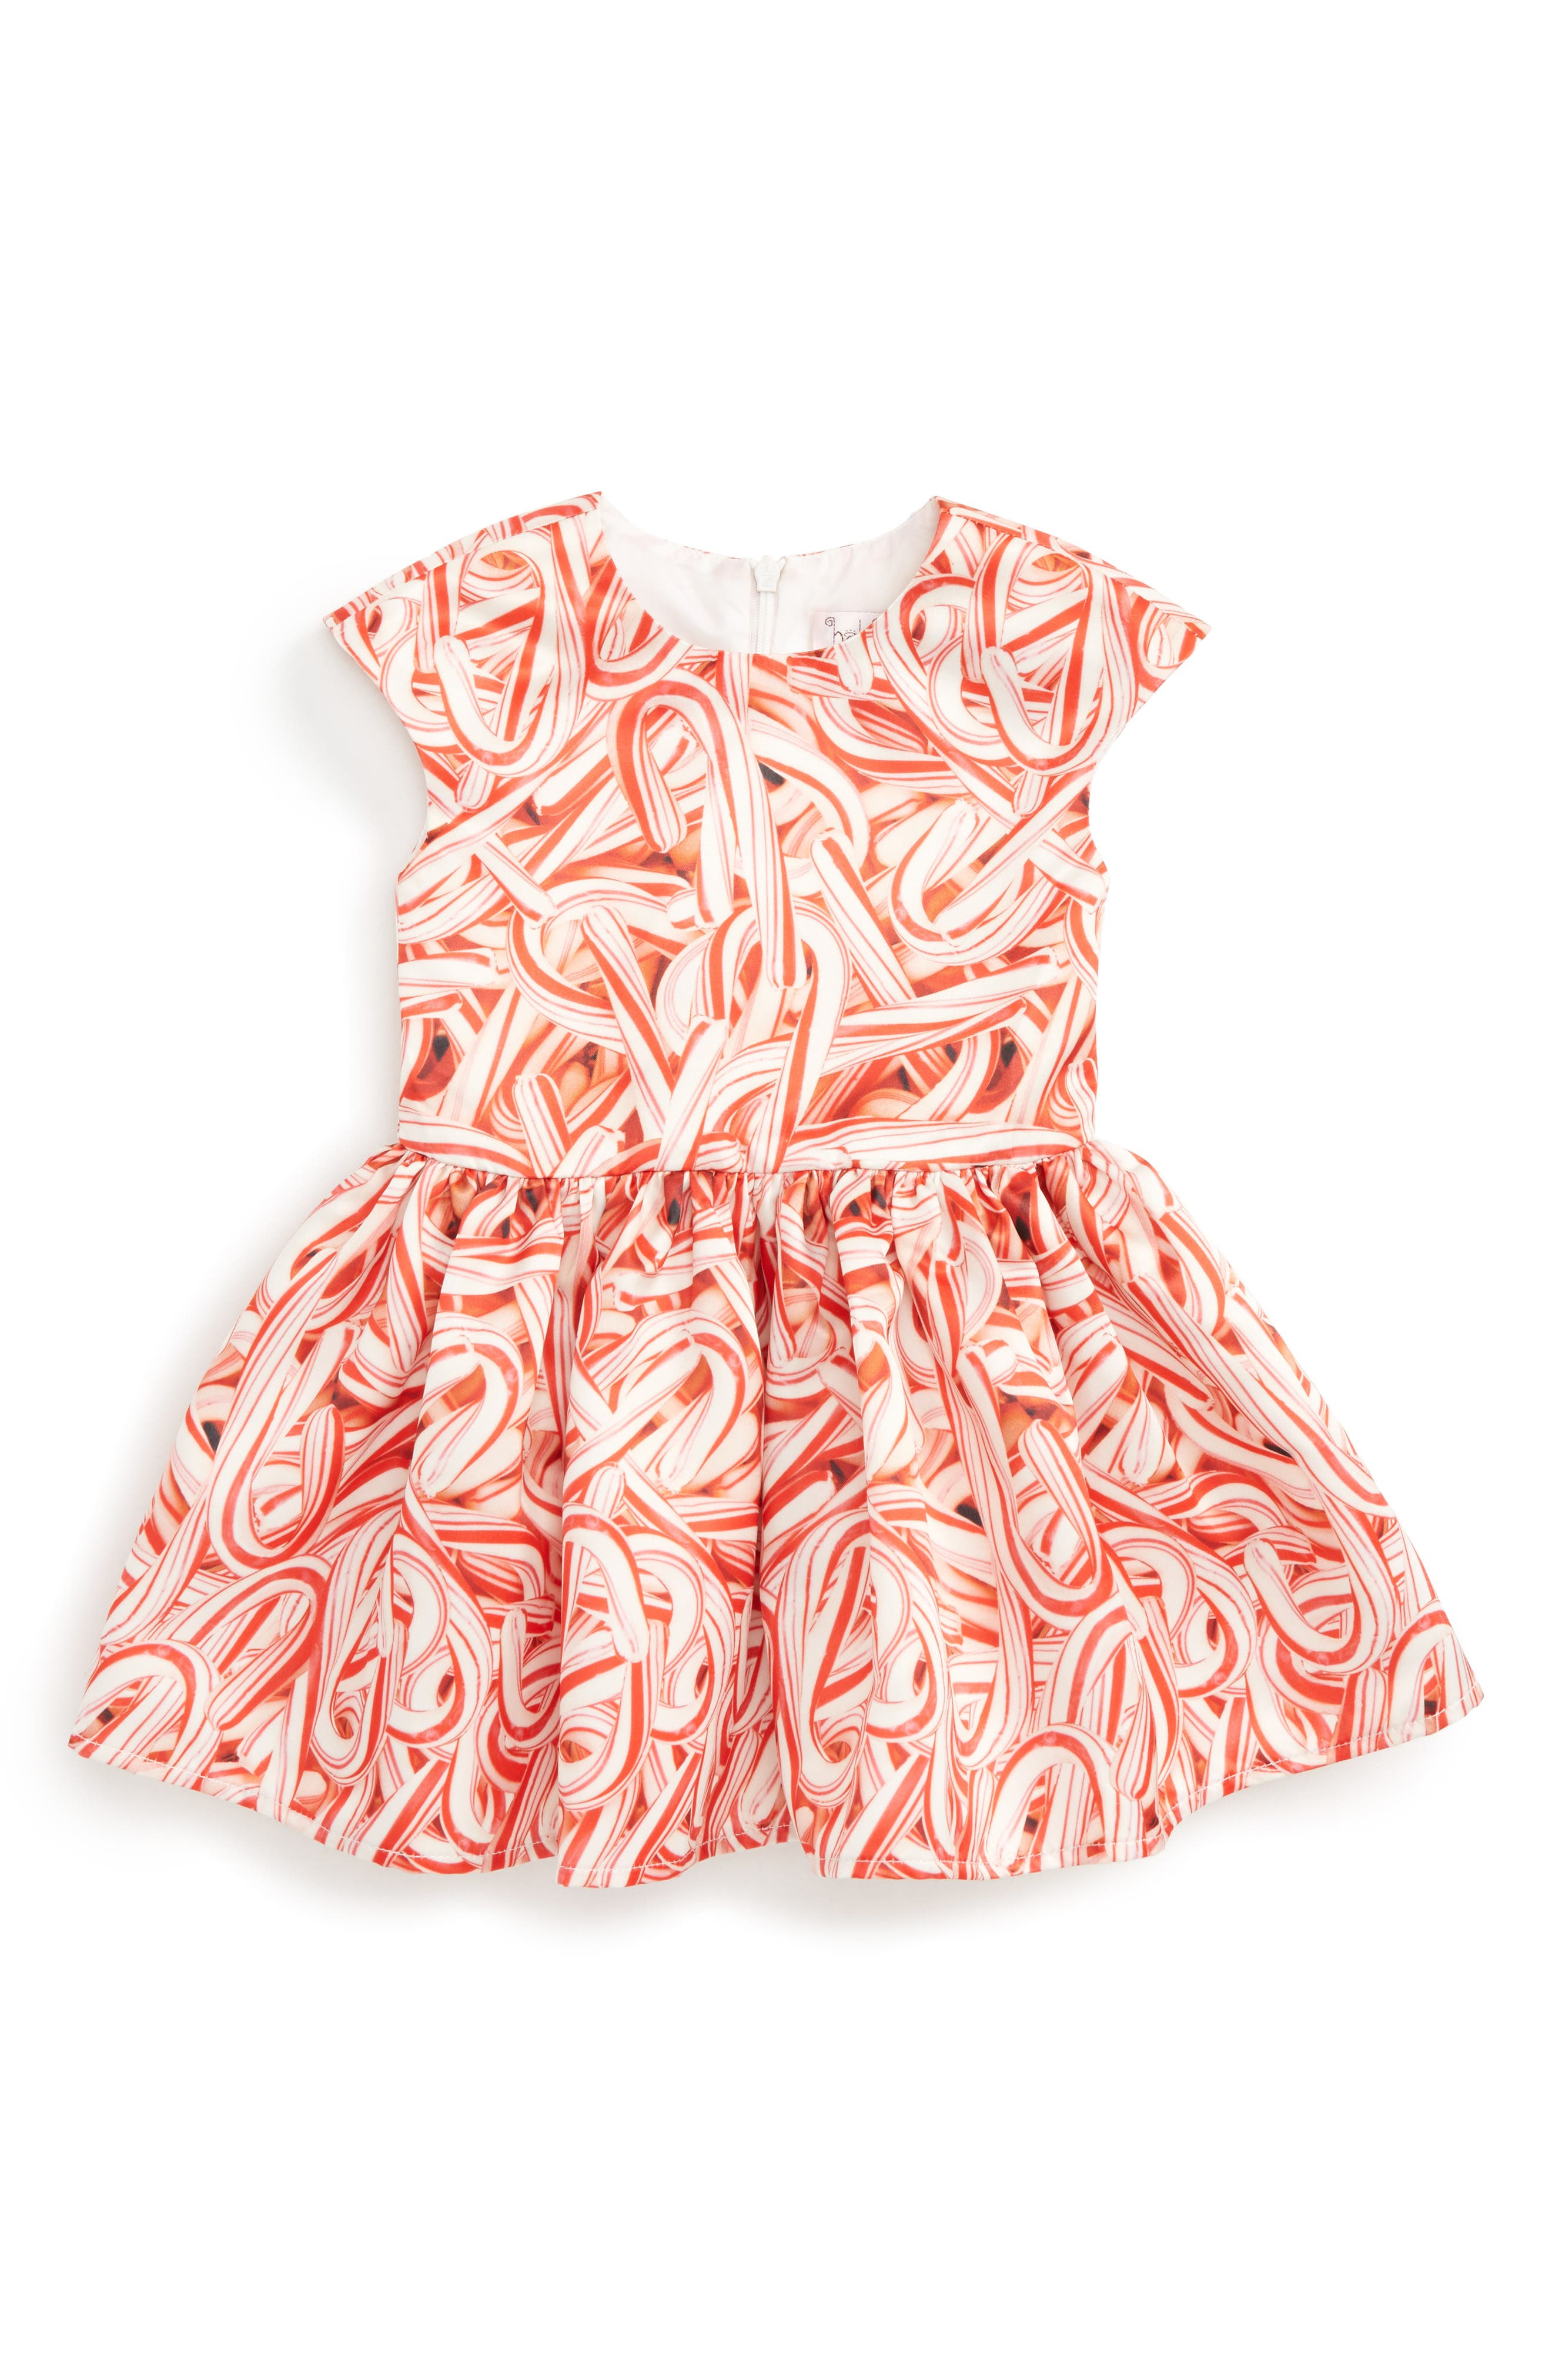 Candy Cane Print Dress,                             Alternate thumbnail 2, color,                             600